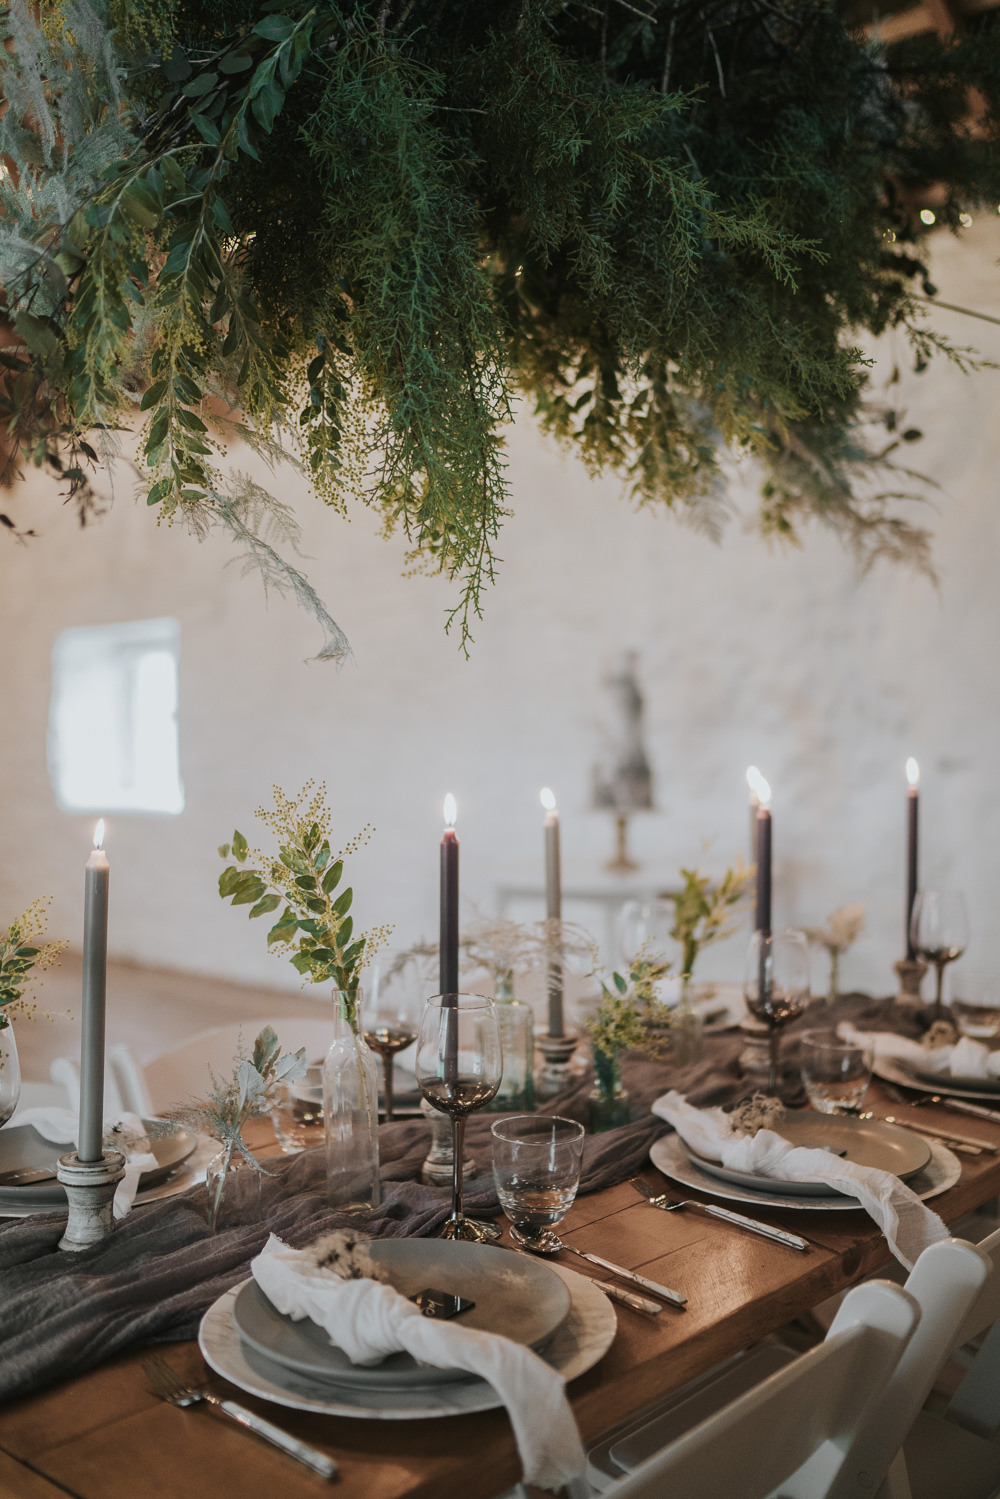 Table Tablescape Decor Table Runners Silk Candles Greenery Foliage Bottles Grey Wedding Ideas Grace Elizabeth